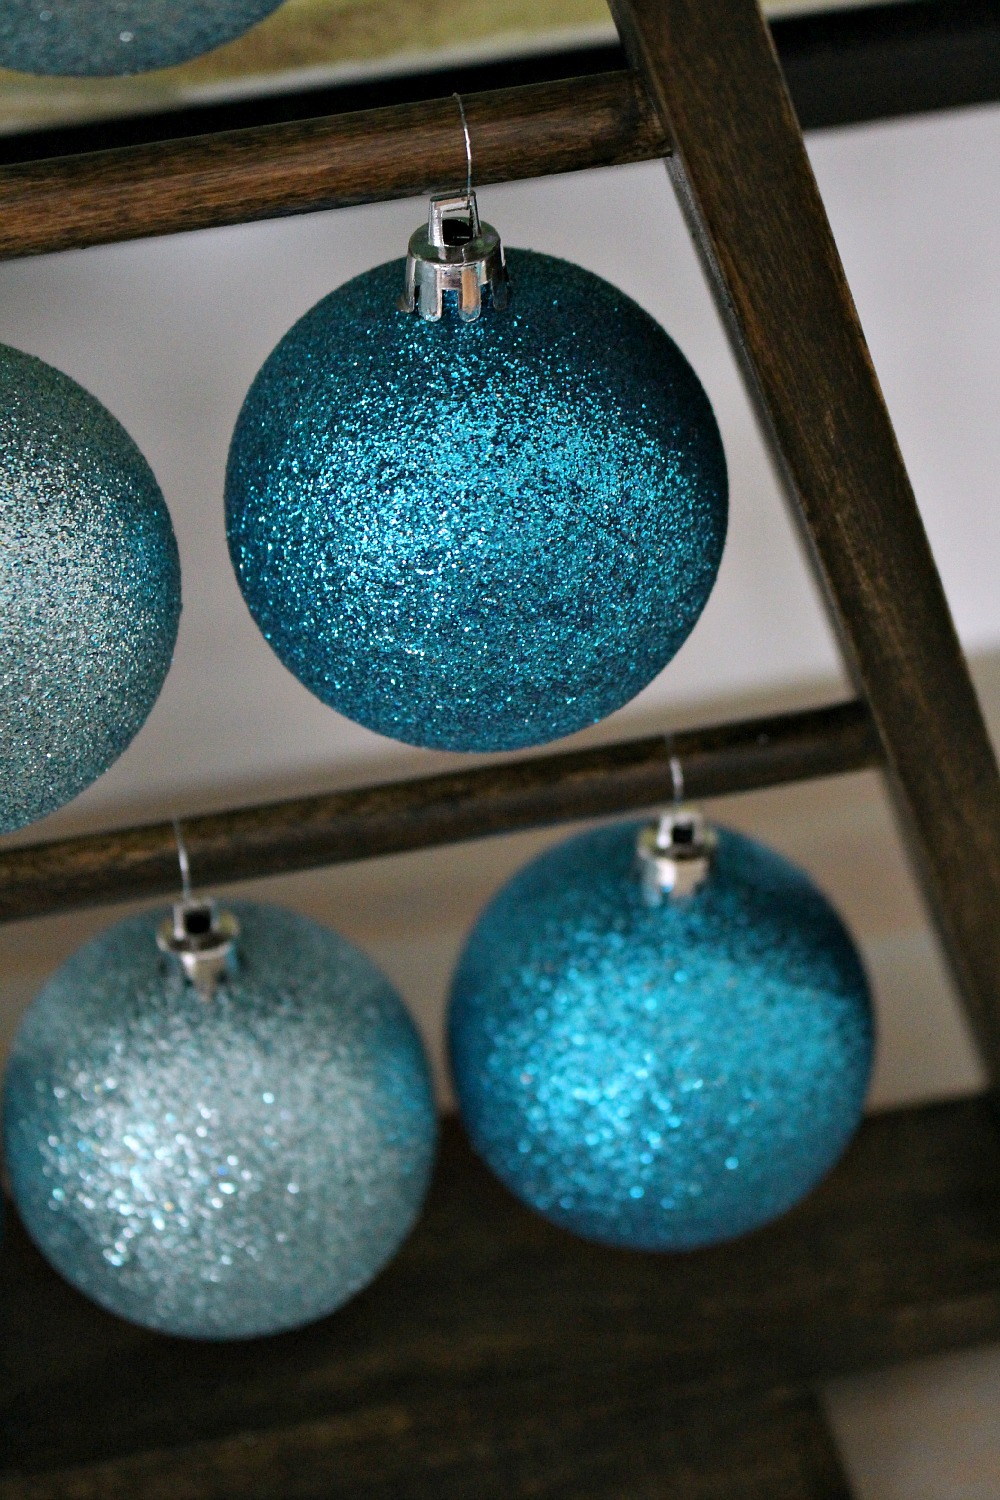 Glittering Teal Ornaments